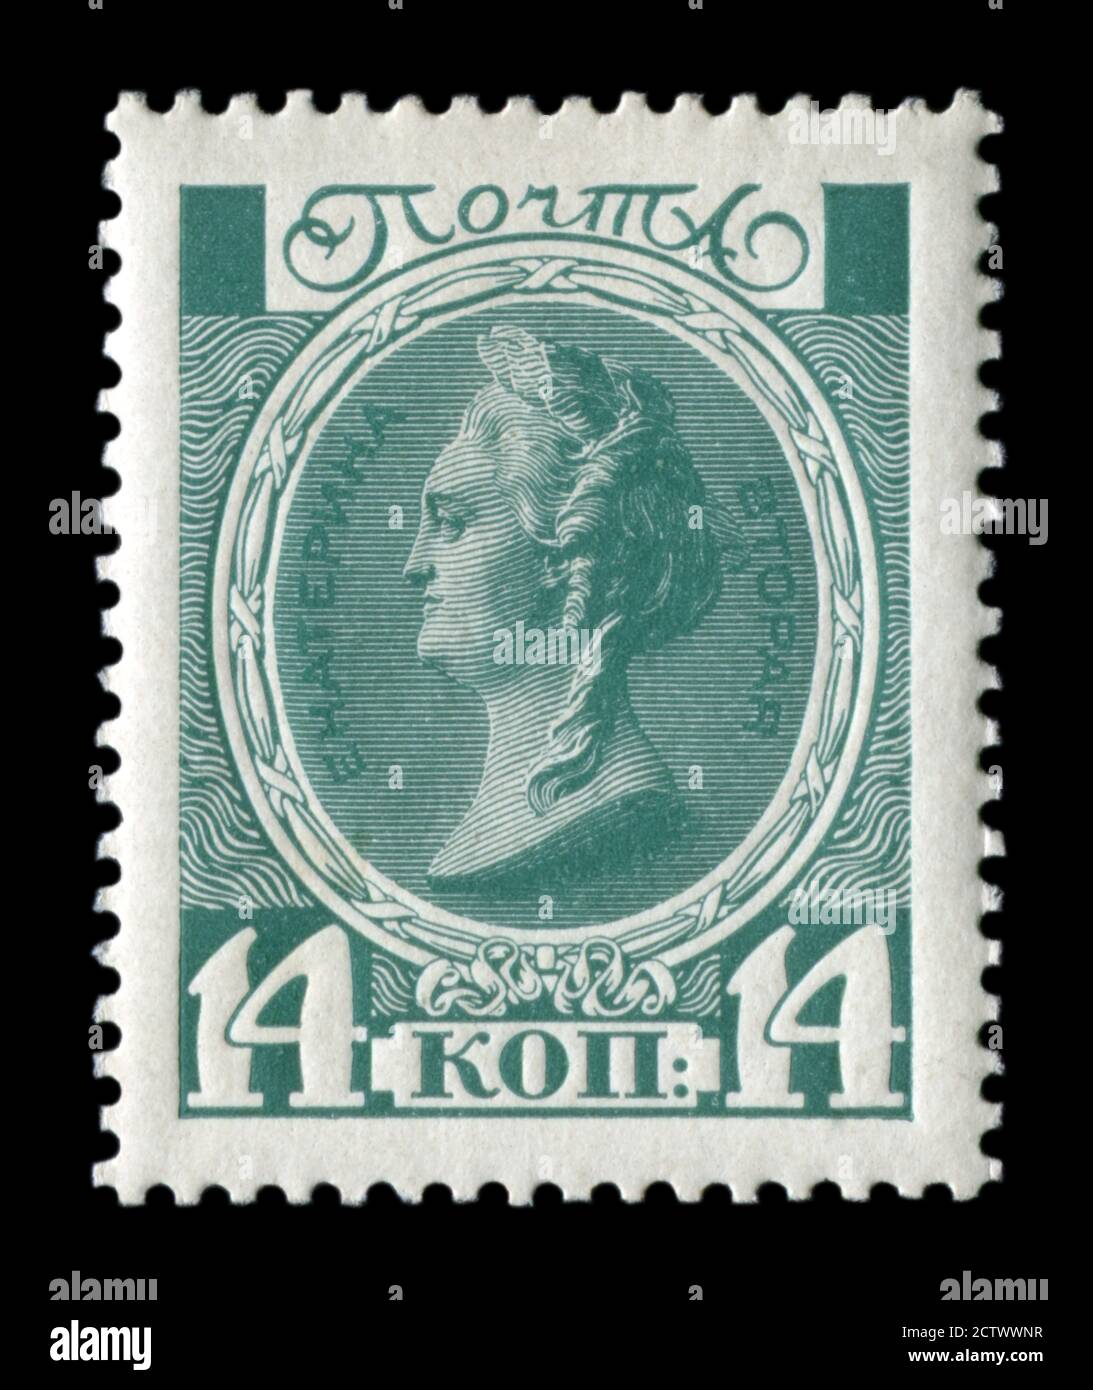 Russian historical postage stamp: 300th anniversary of the house of Romanov. Tsarist dynasty of the Russian Empire, Catherine the Great, 1613-1913 Stock Photo